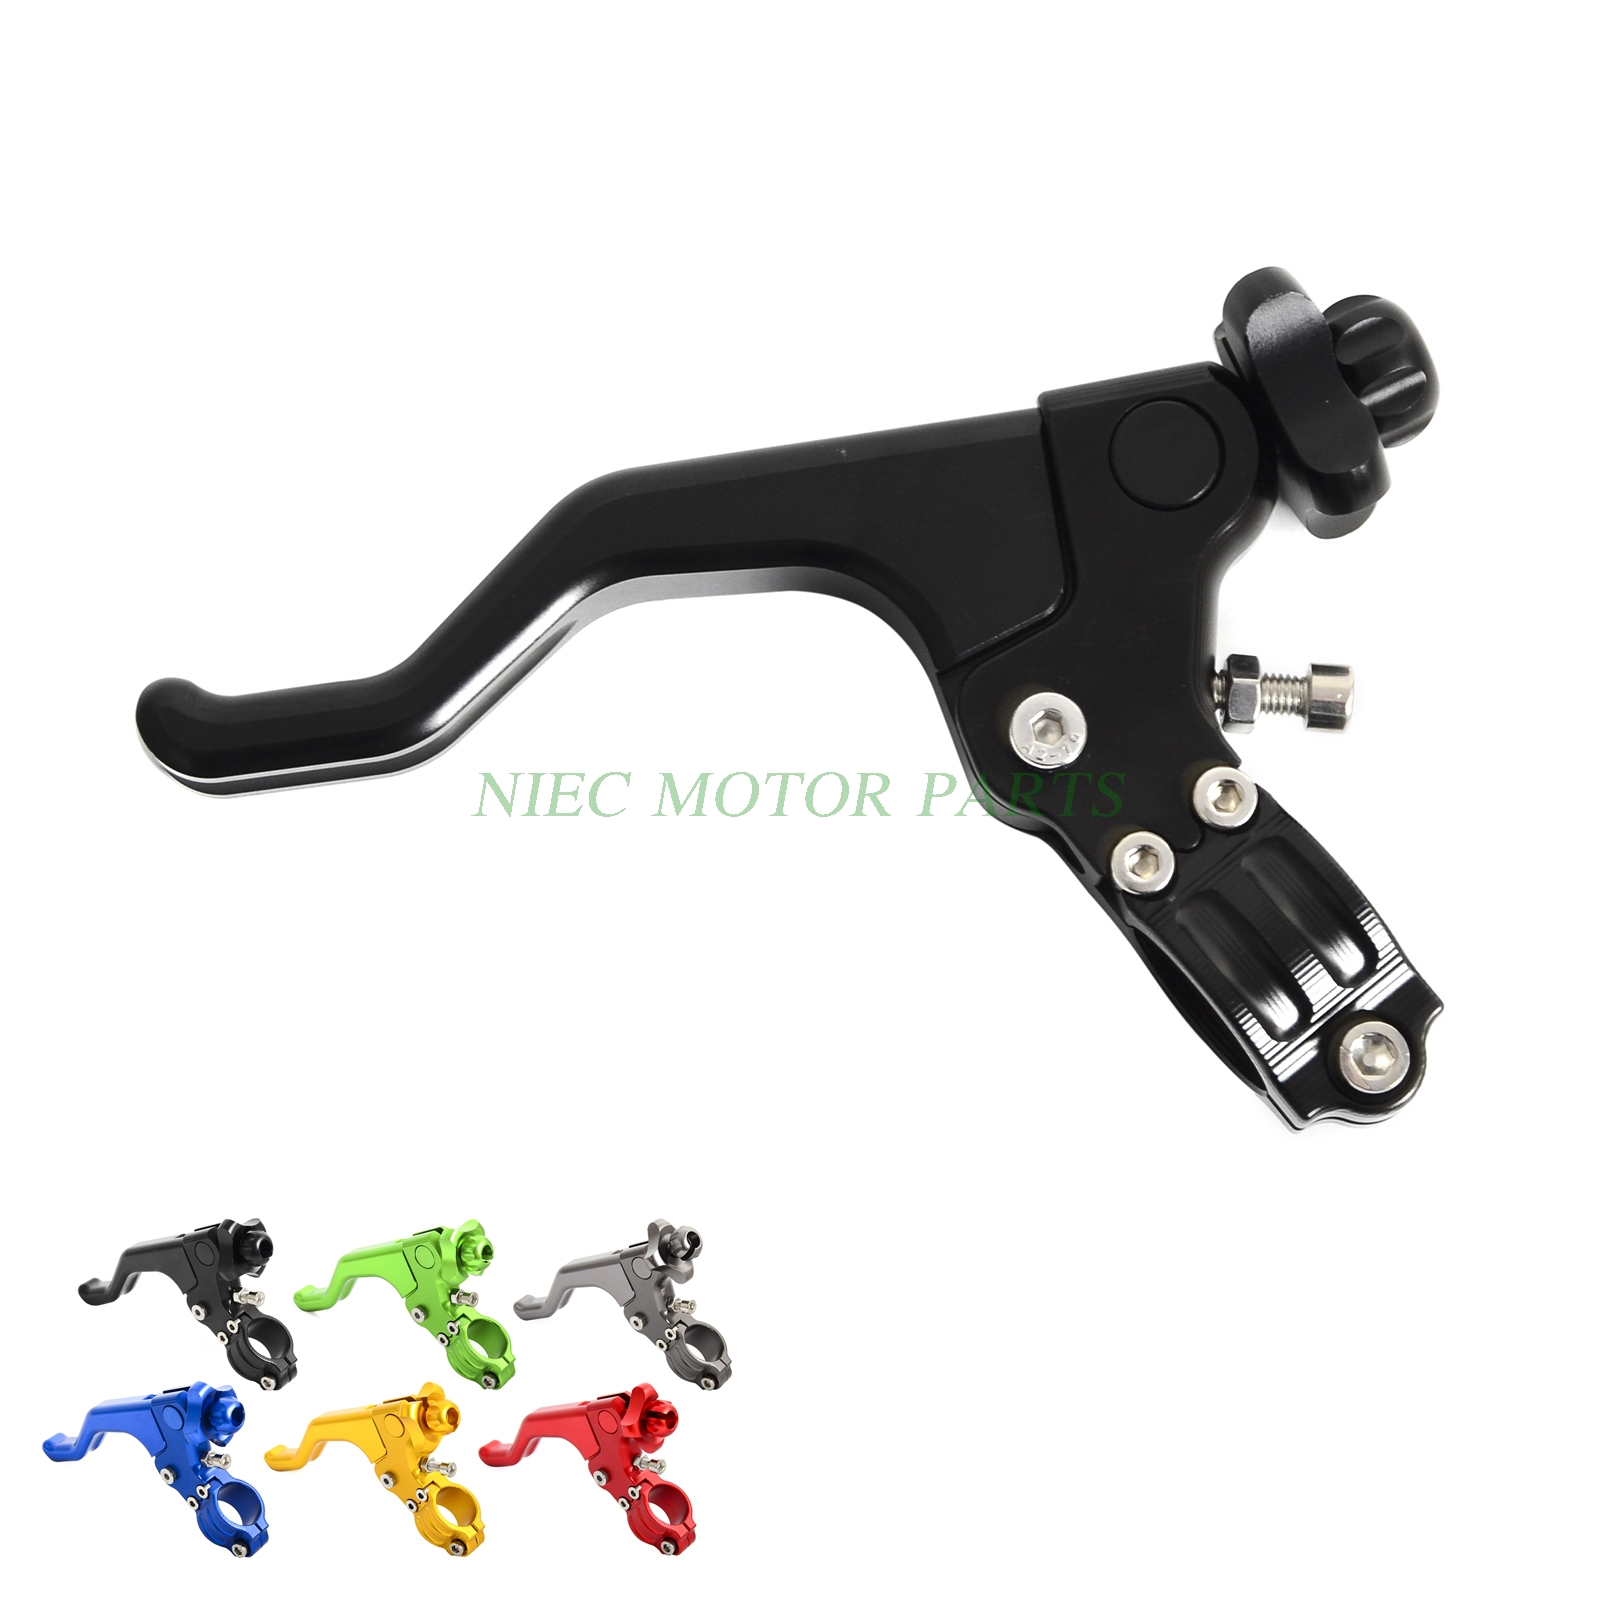 CNC Performance Stunt Clutch Lever /Clutch Perch assembly For Honda CR CRF Kawasaki KX KLX Suzuki RM DRZ Yamaha YZ WR<br>